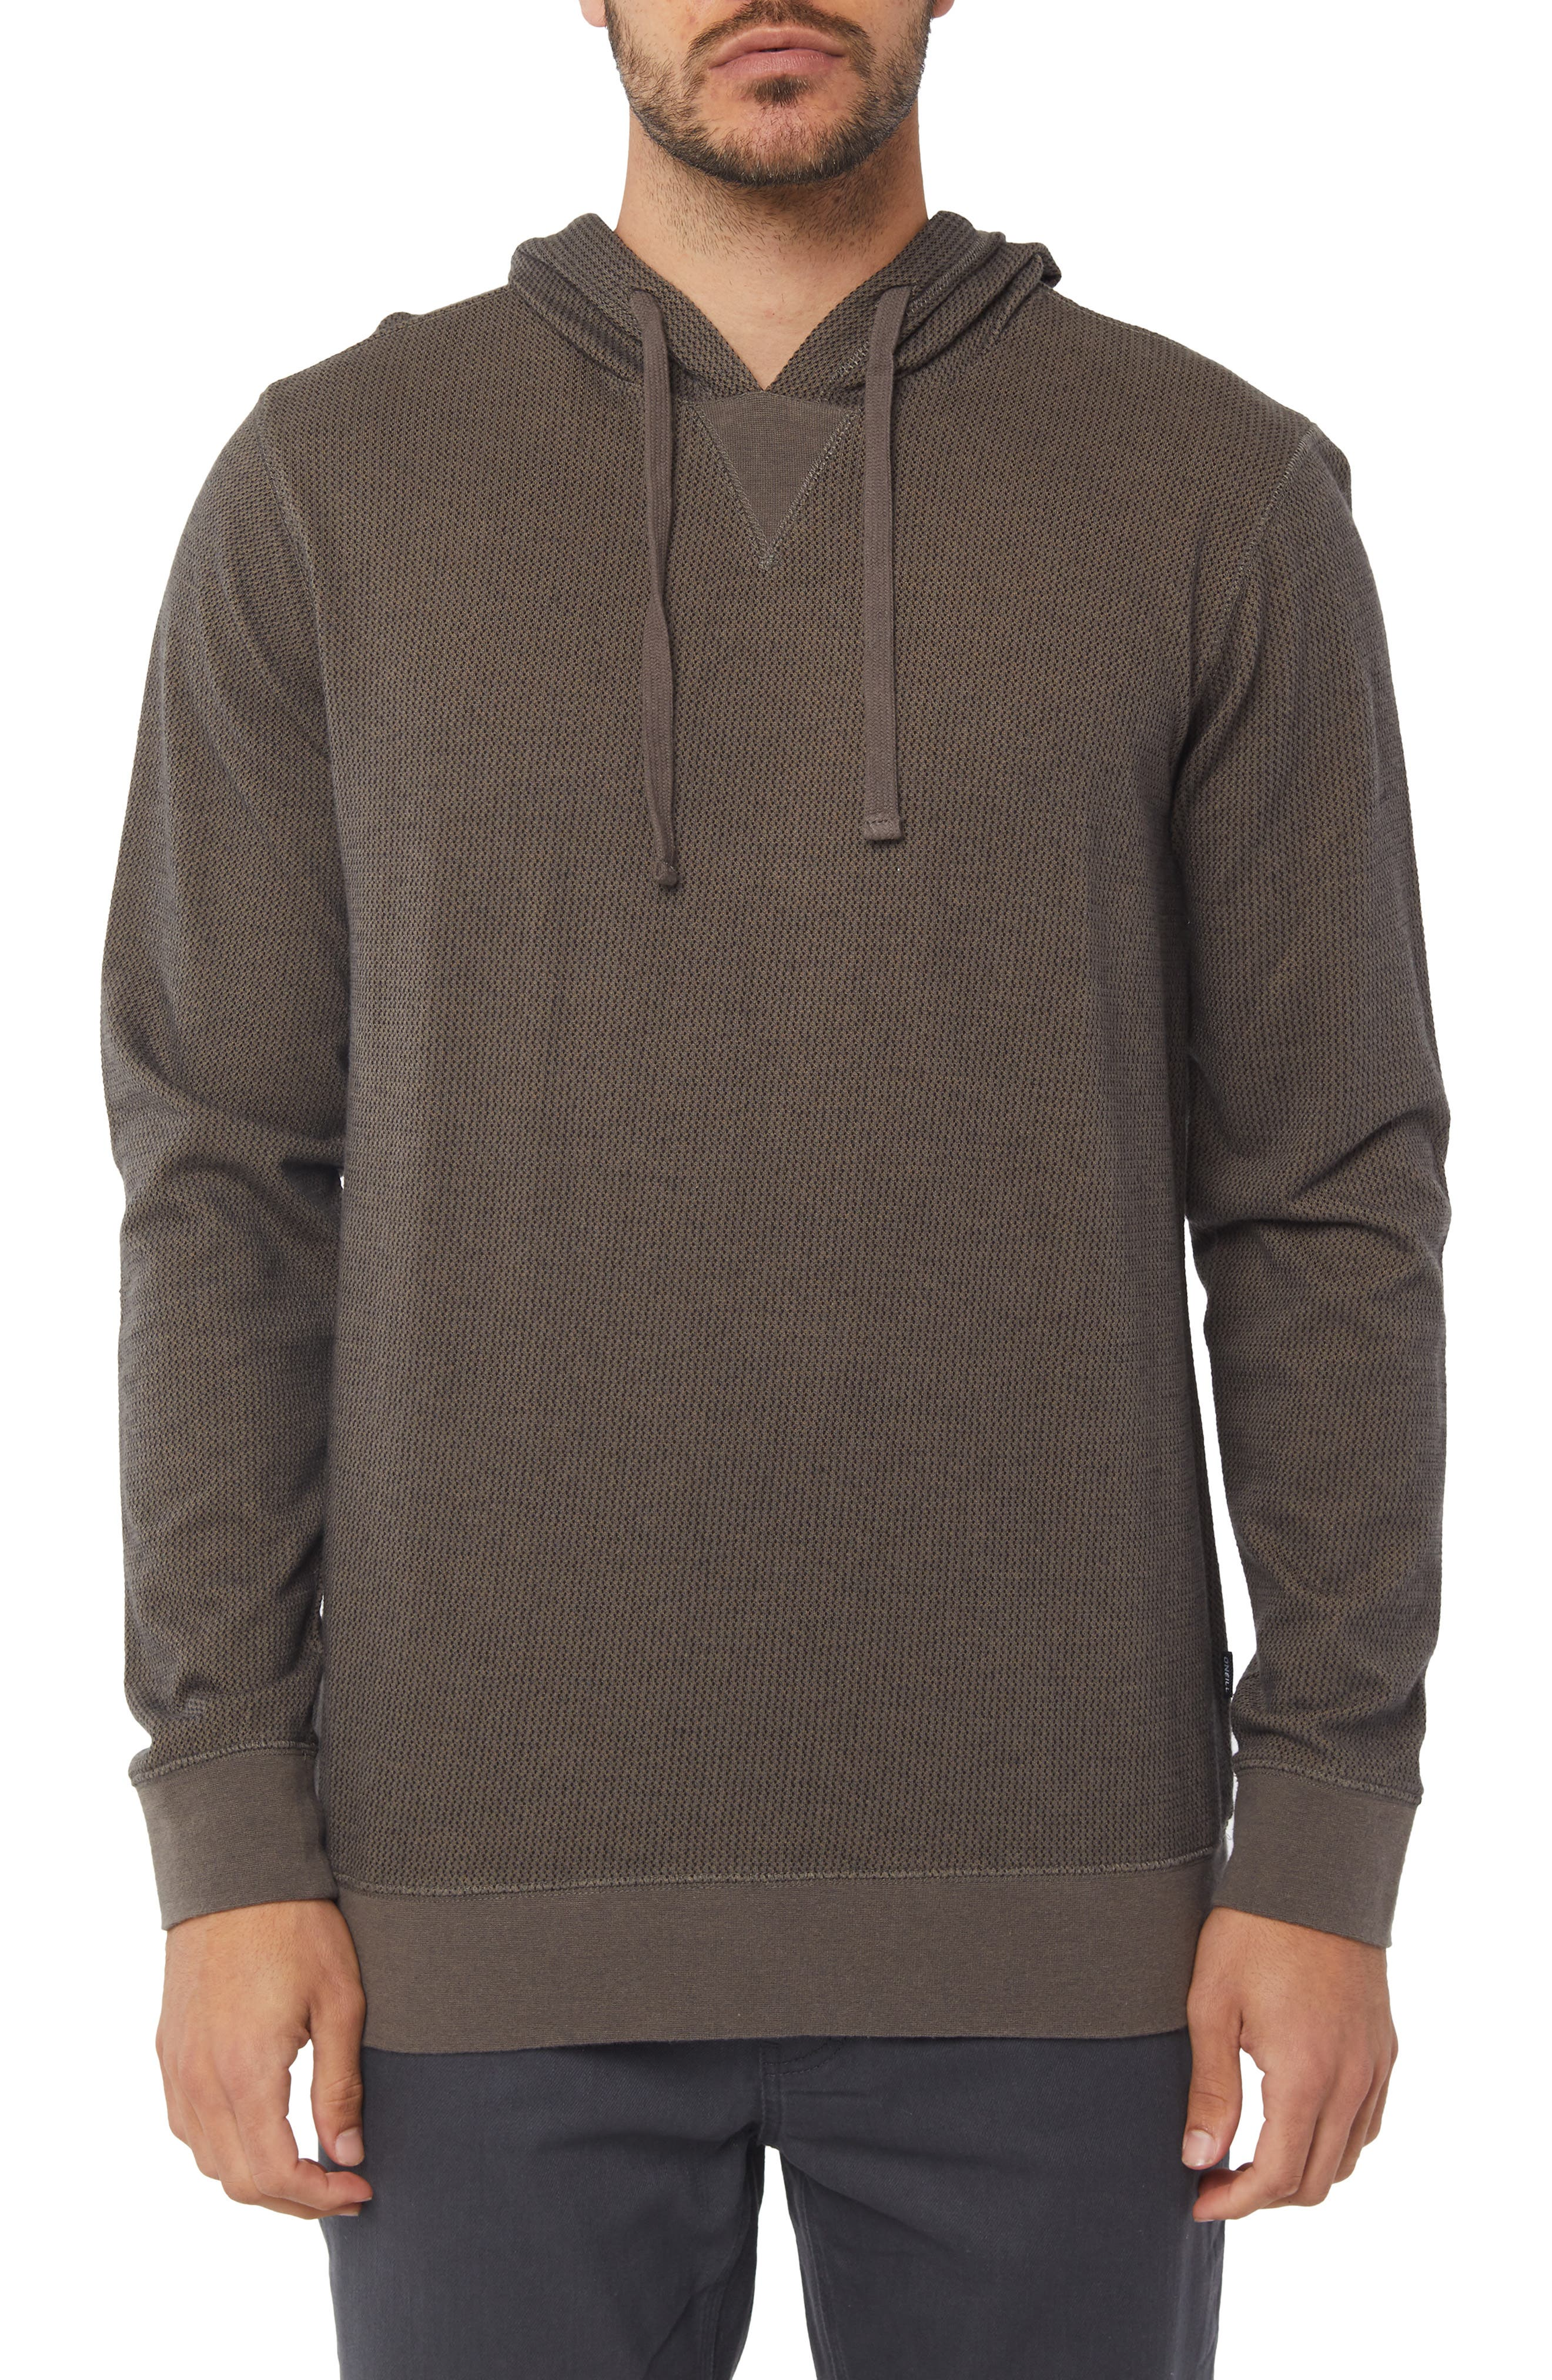 Hardy Thermal Pullover Hoodie,                         Main,                         color, DARK ARMY